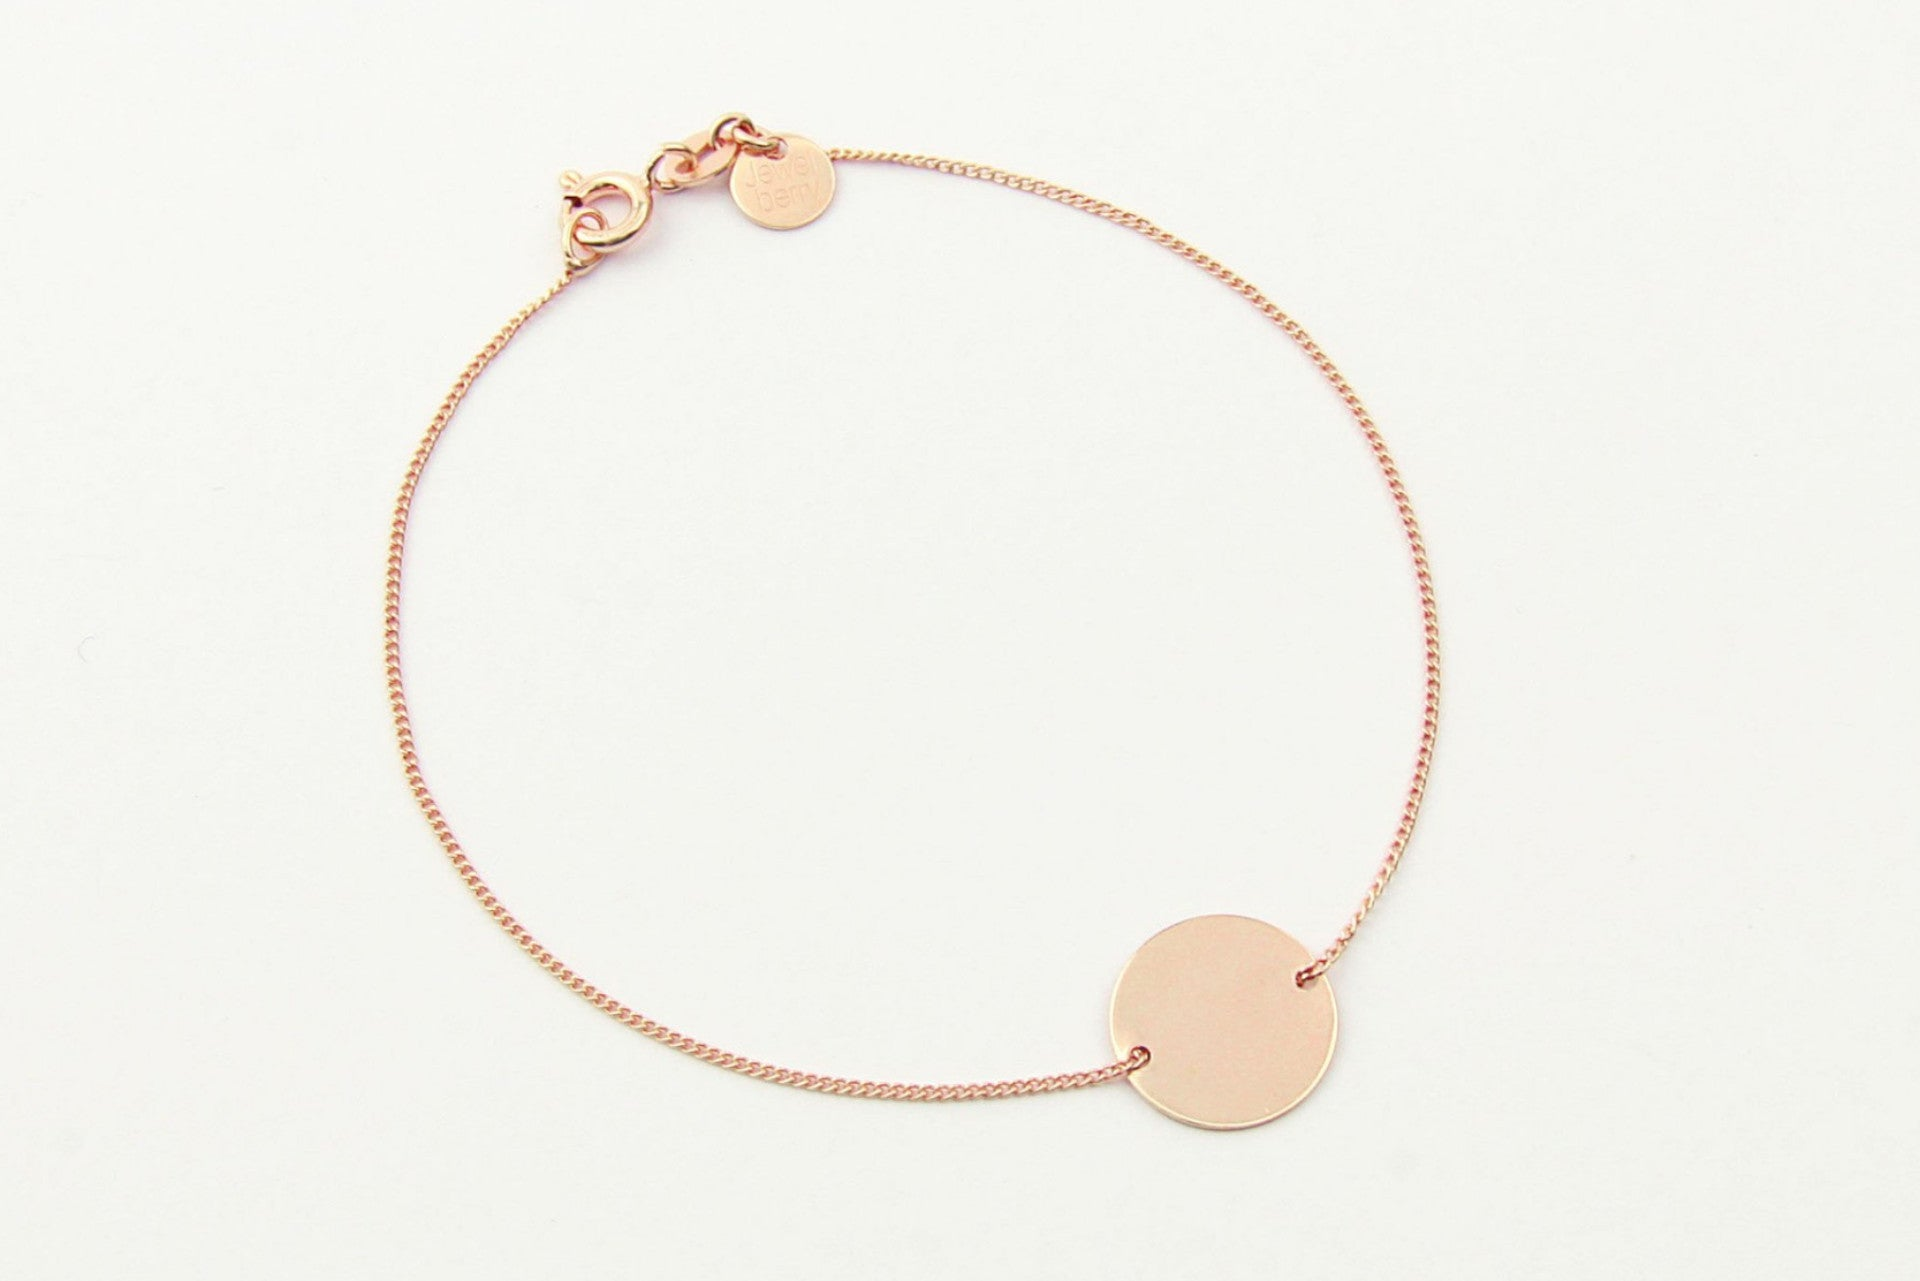 jewelberry armband bracelet medium disc double rose gold plated sterling silver fine jewelry handmade with love fairtrade curb chain